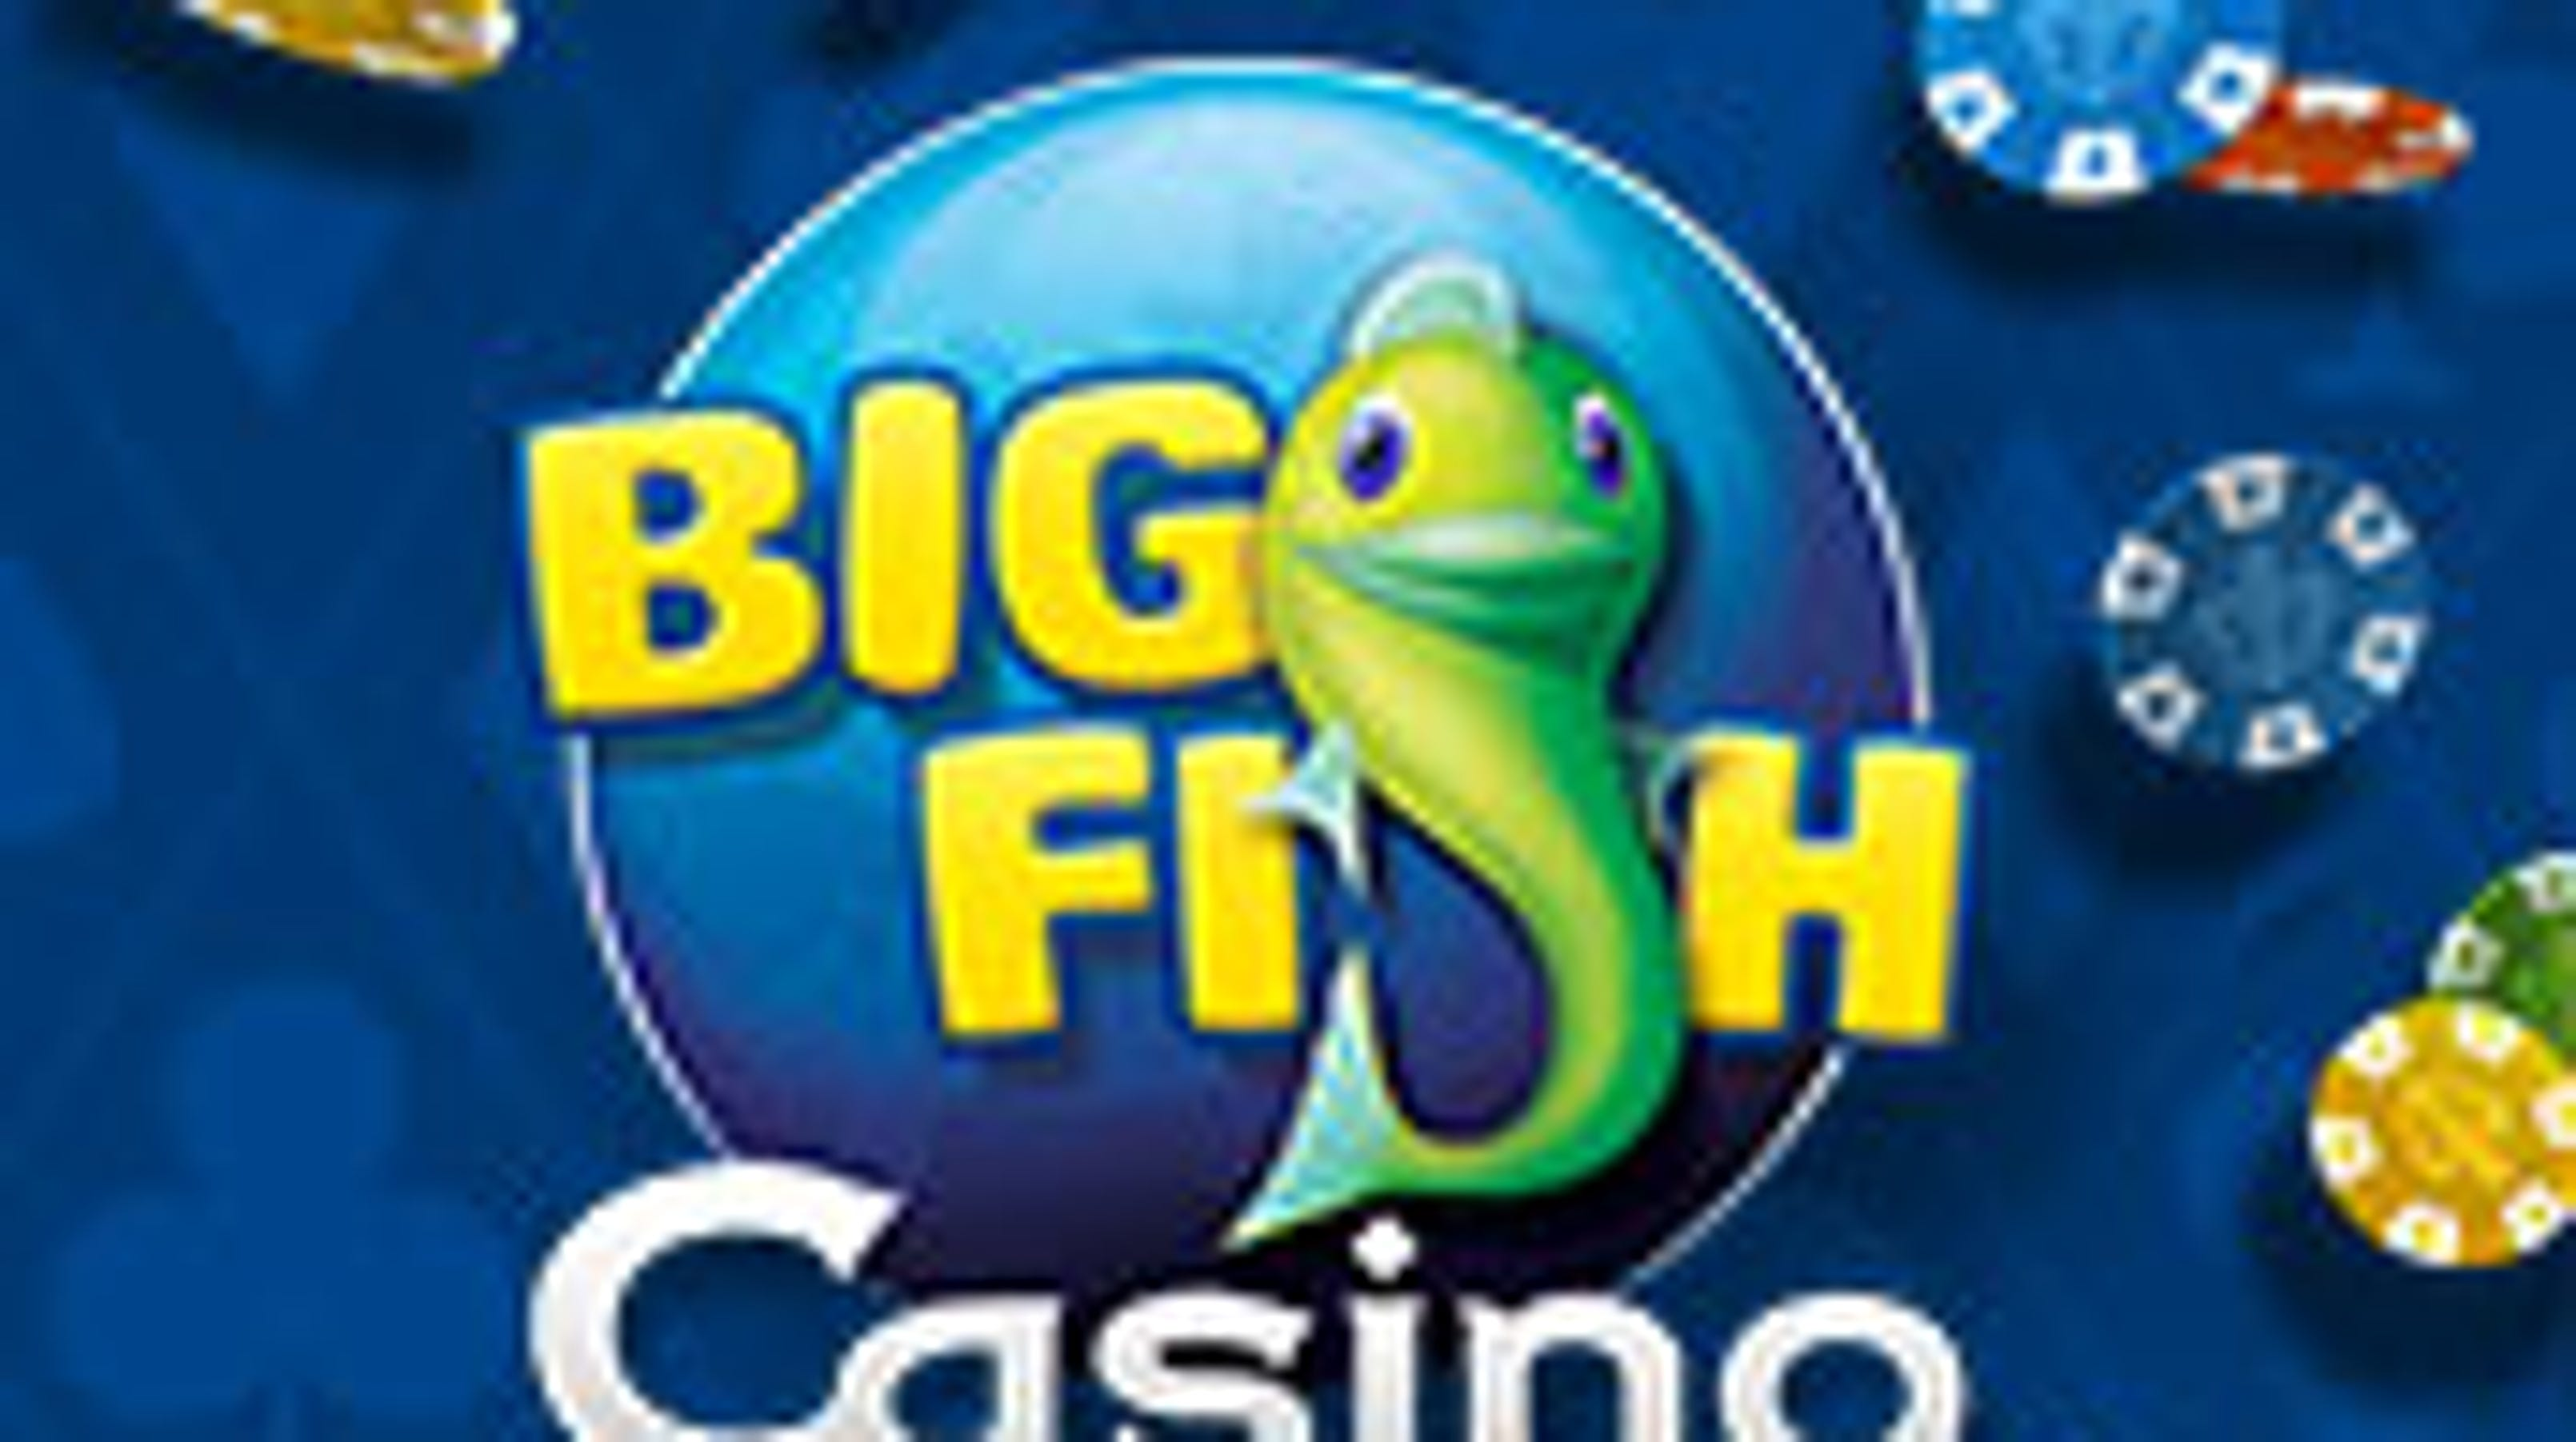 Churchill downs inc 39 s purchase of big fish online gaming done for Big fish casino facebook